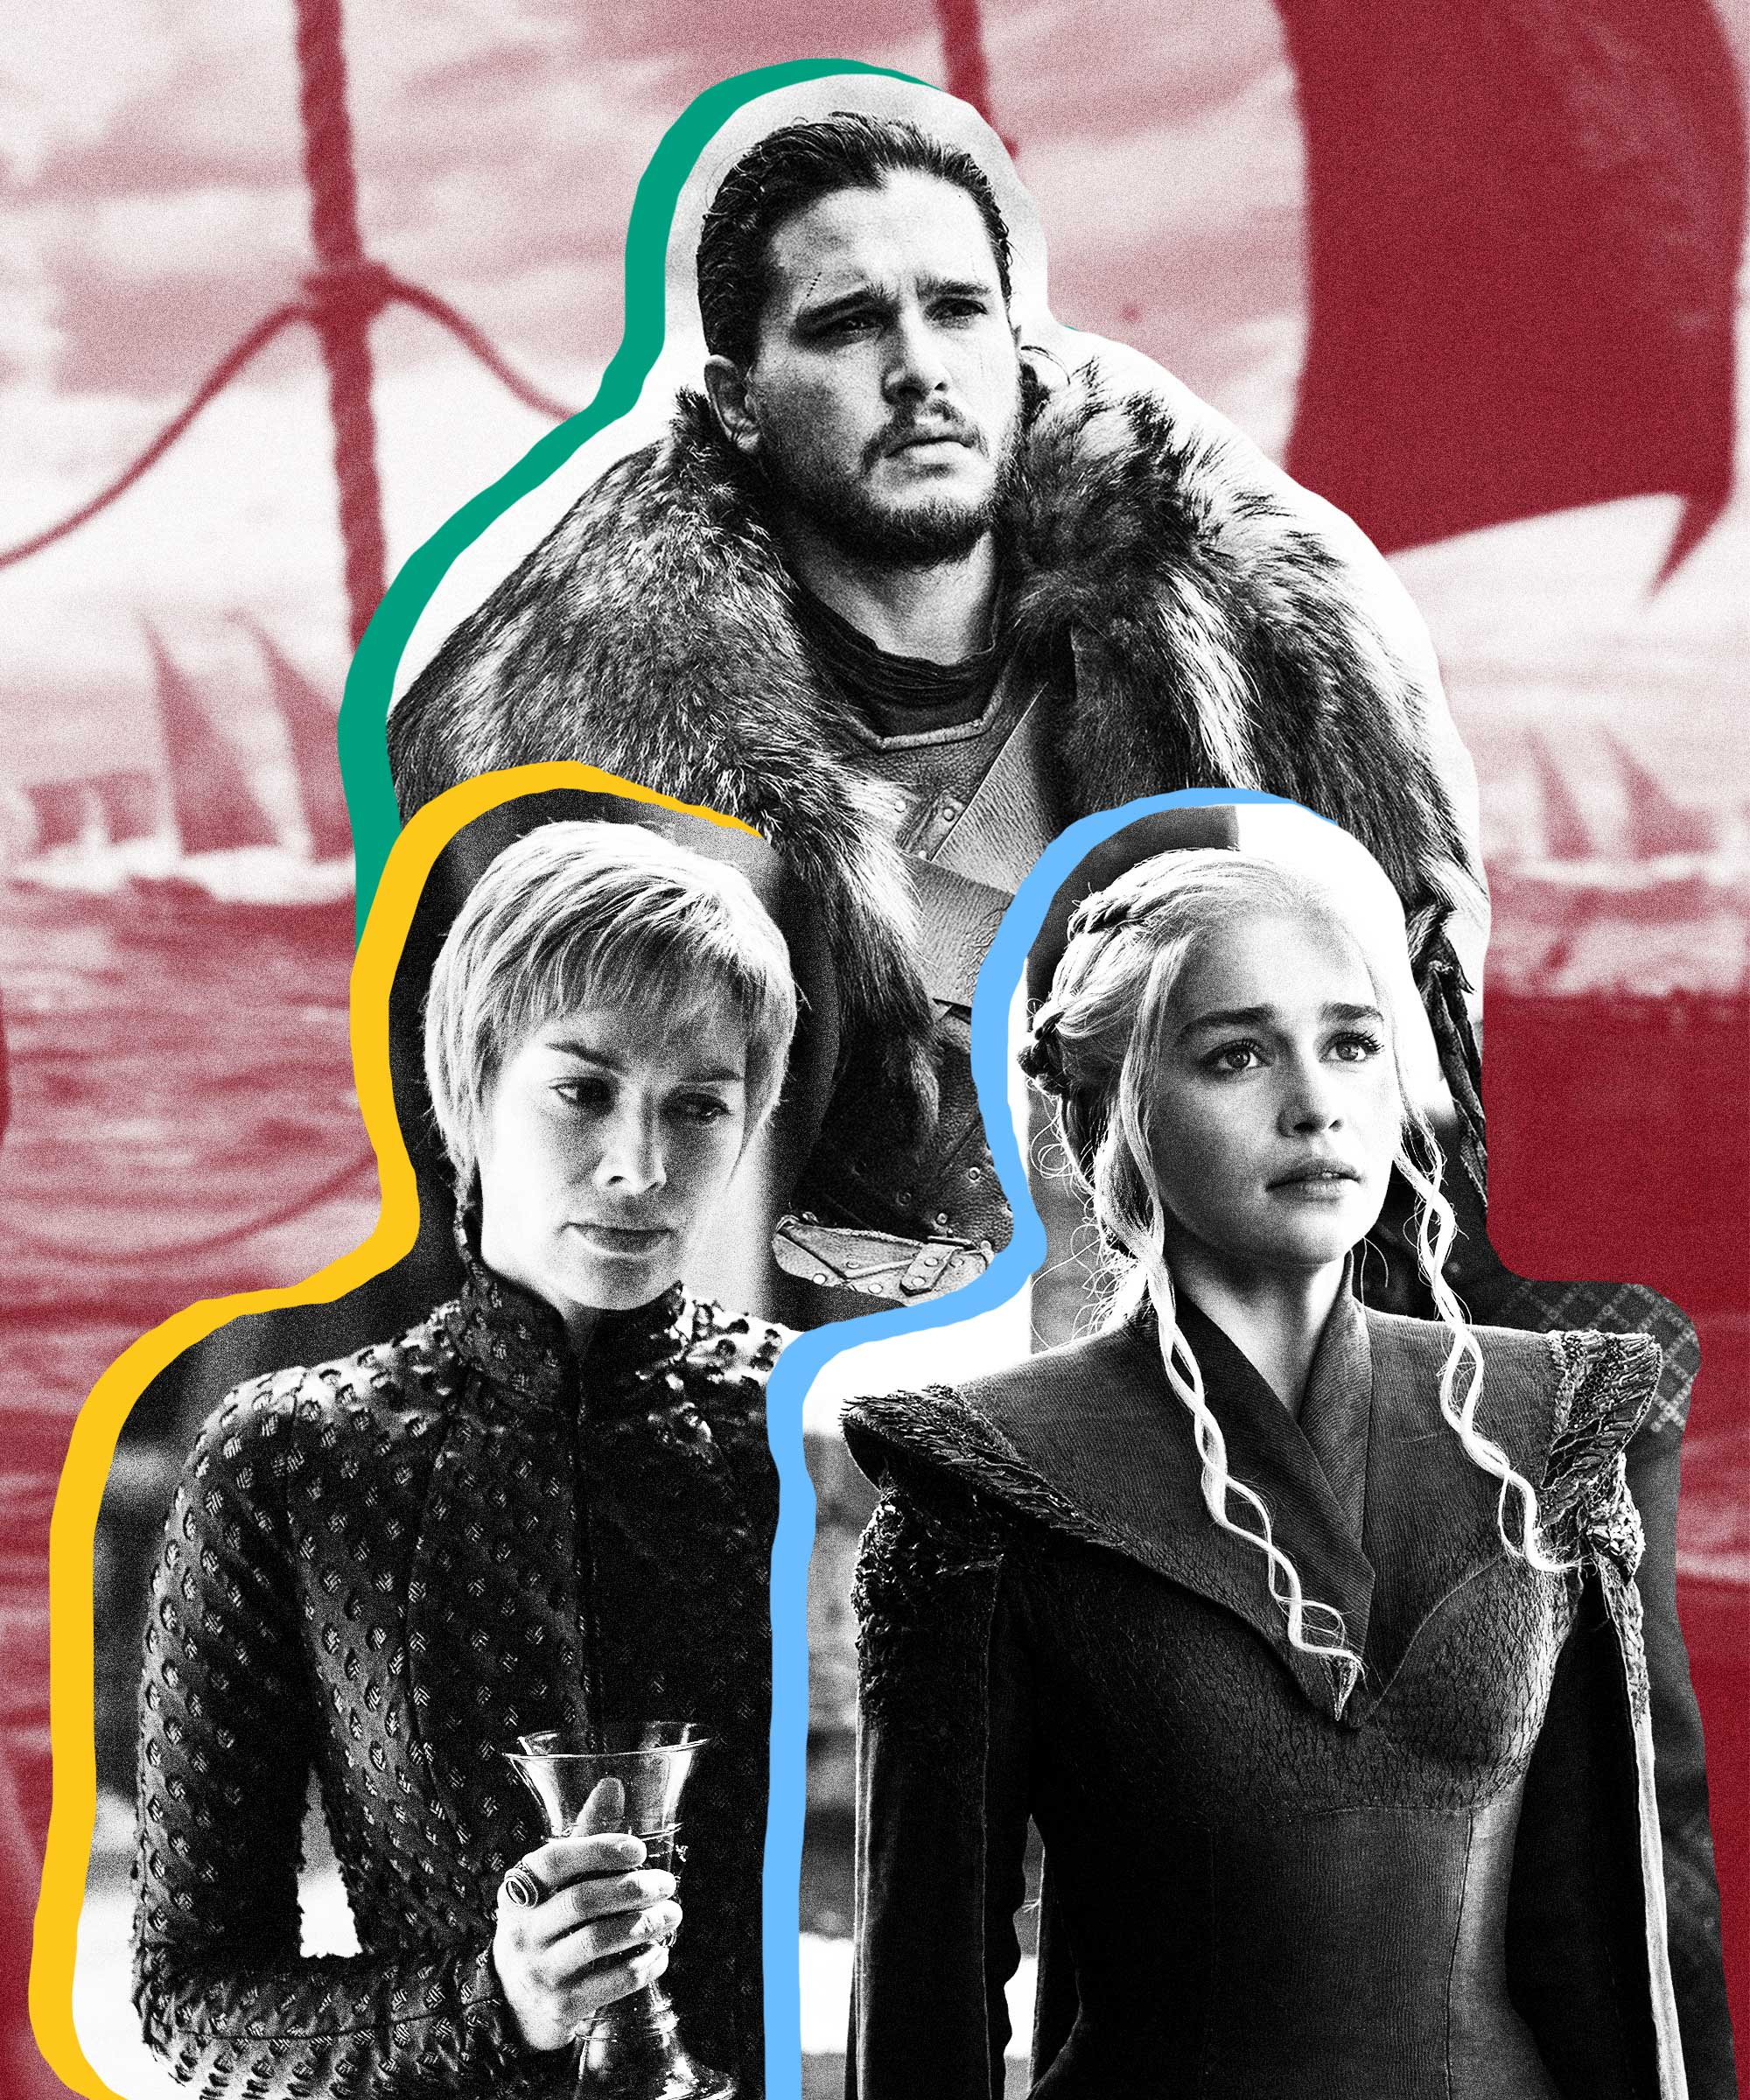 Who's The Rightful Heir To The Iron Throne?